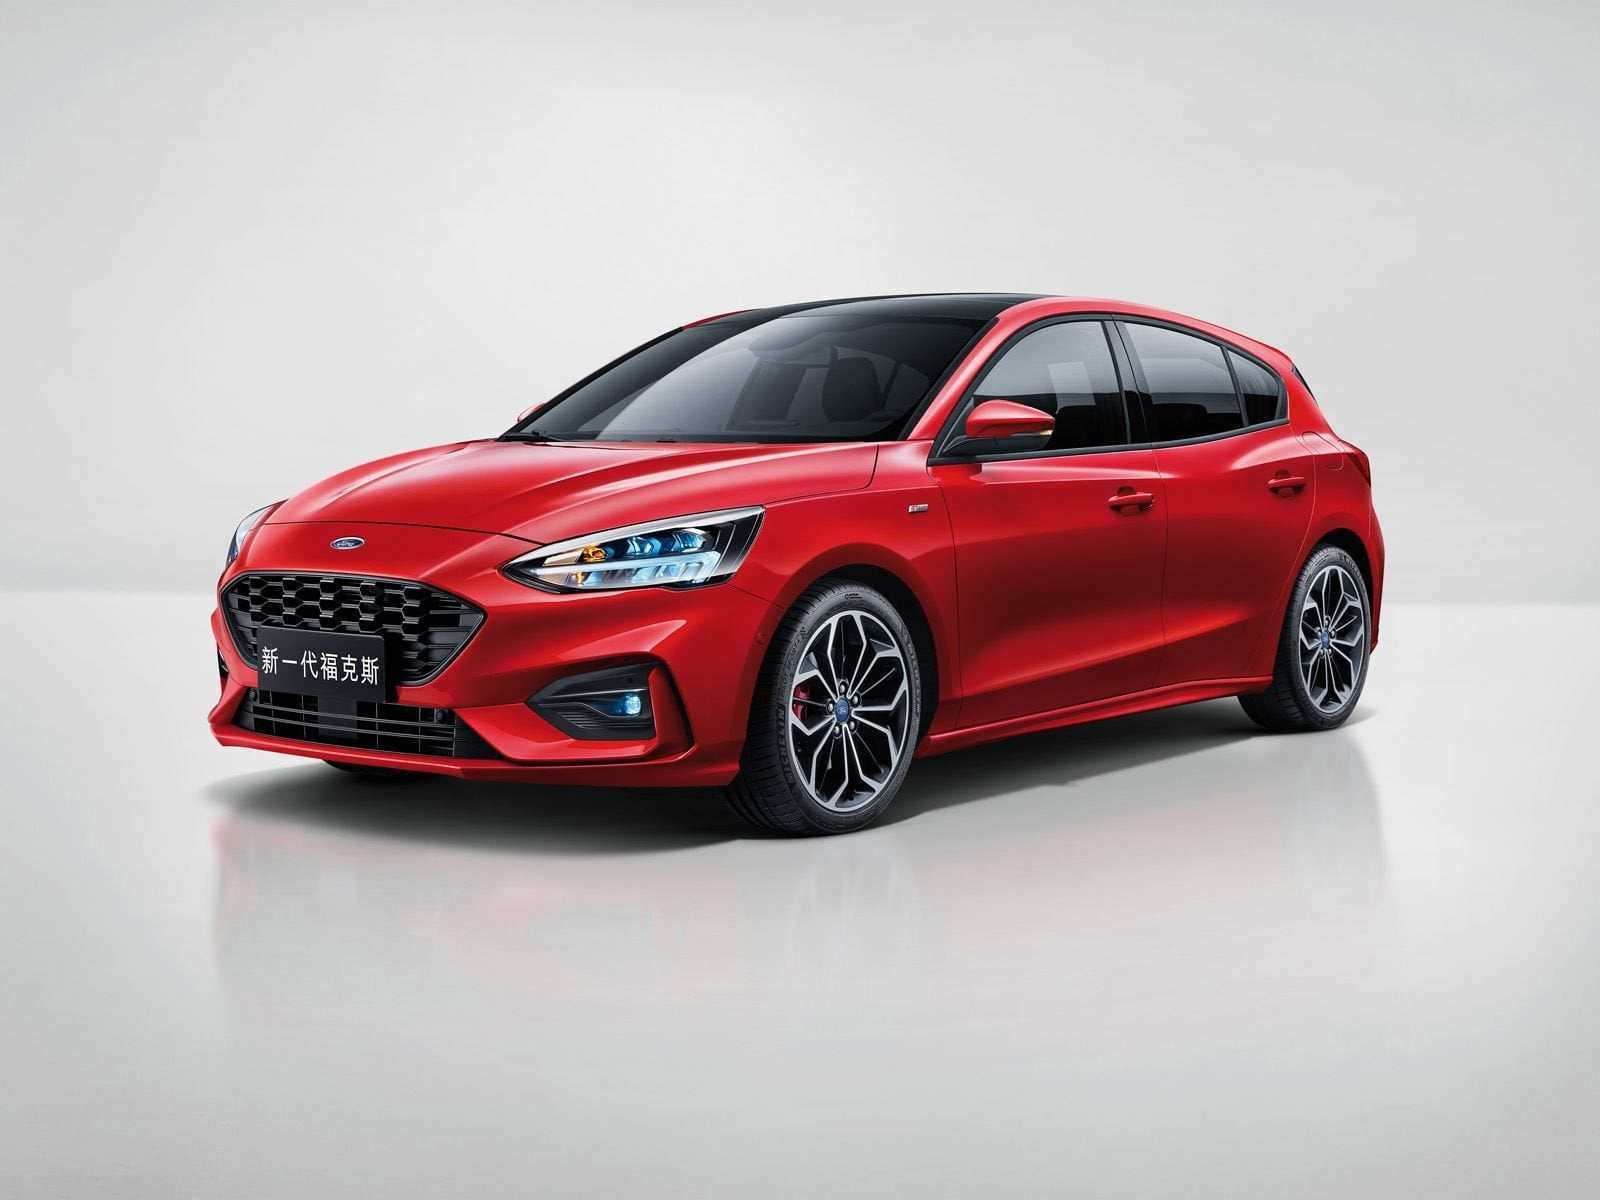 52 All New 2019 Ford Focus Sedan Style